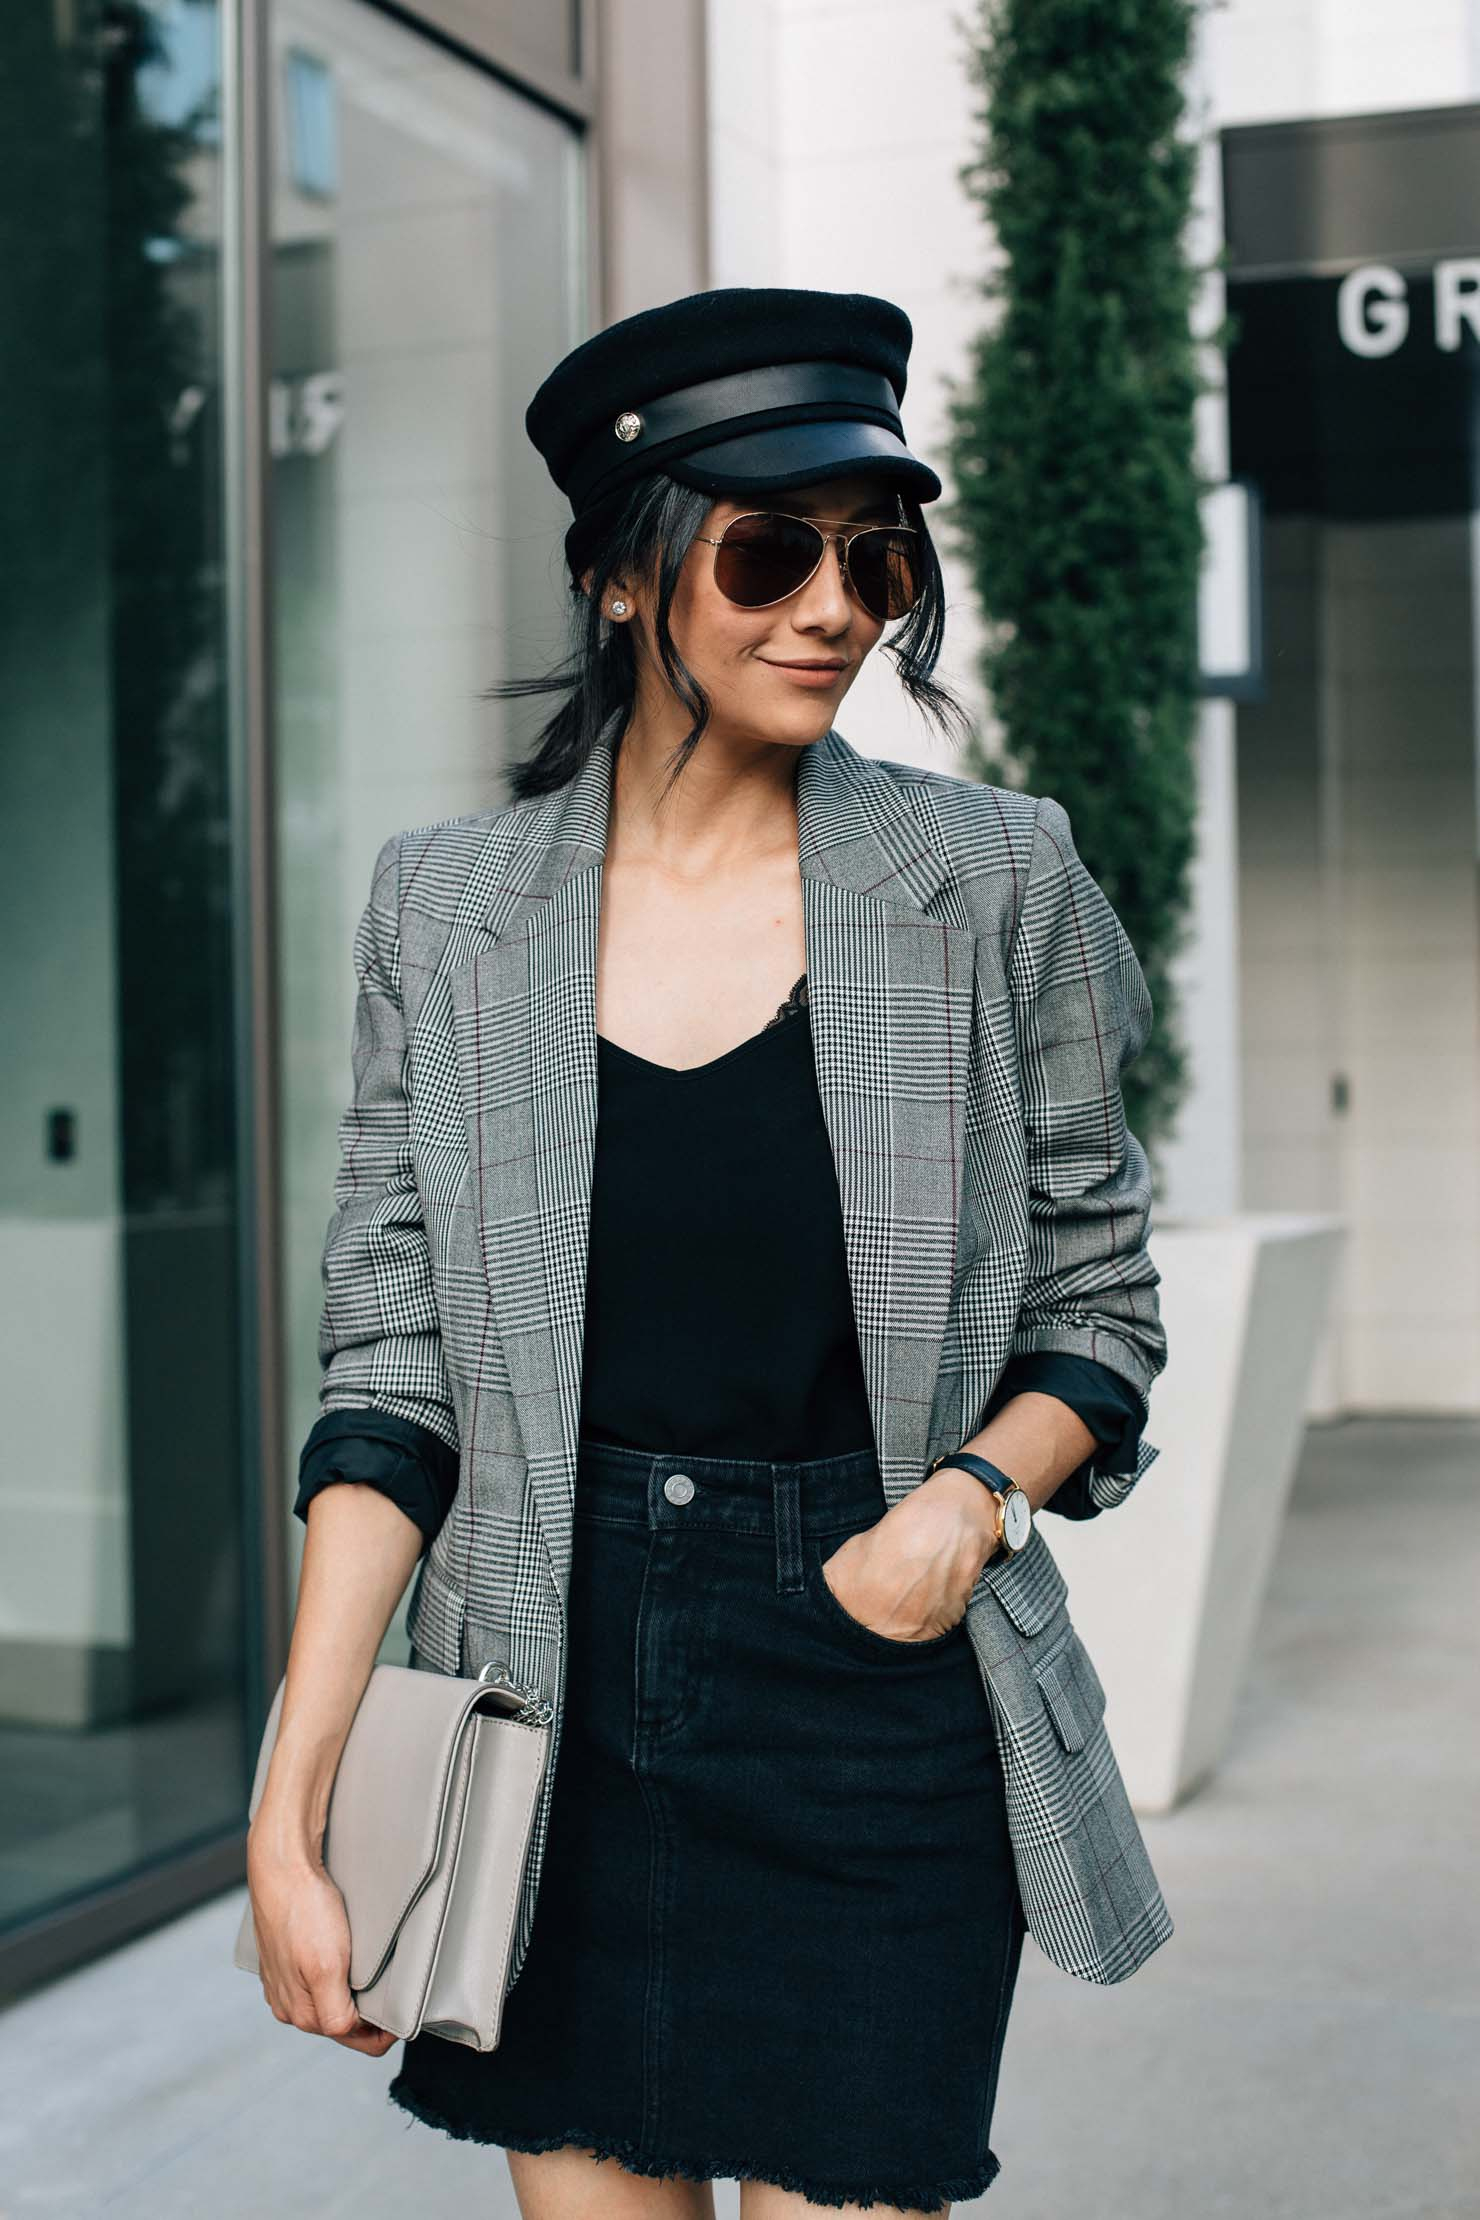 Style blogger Lilly Beltran in a trendy fall look with a black denim skirt, plaid blazer and baker boy hat